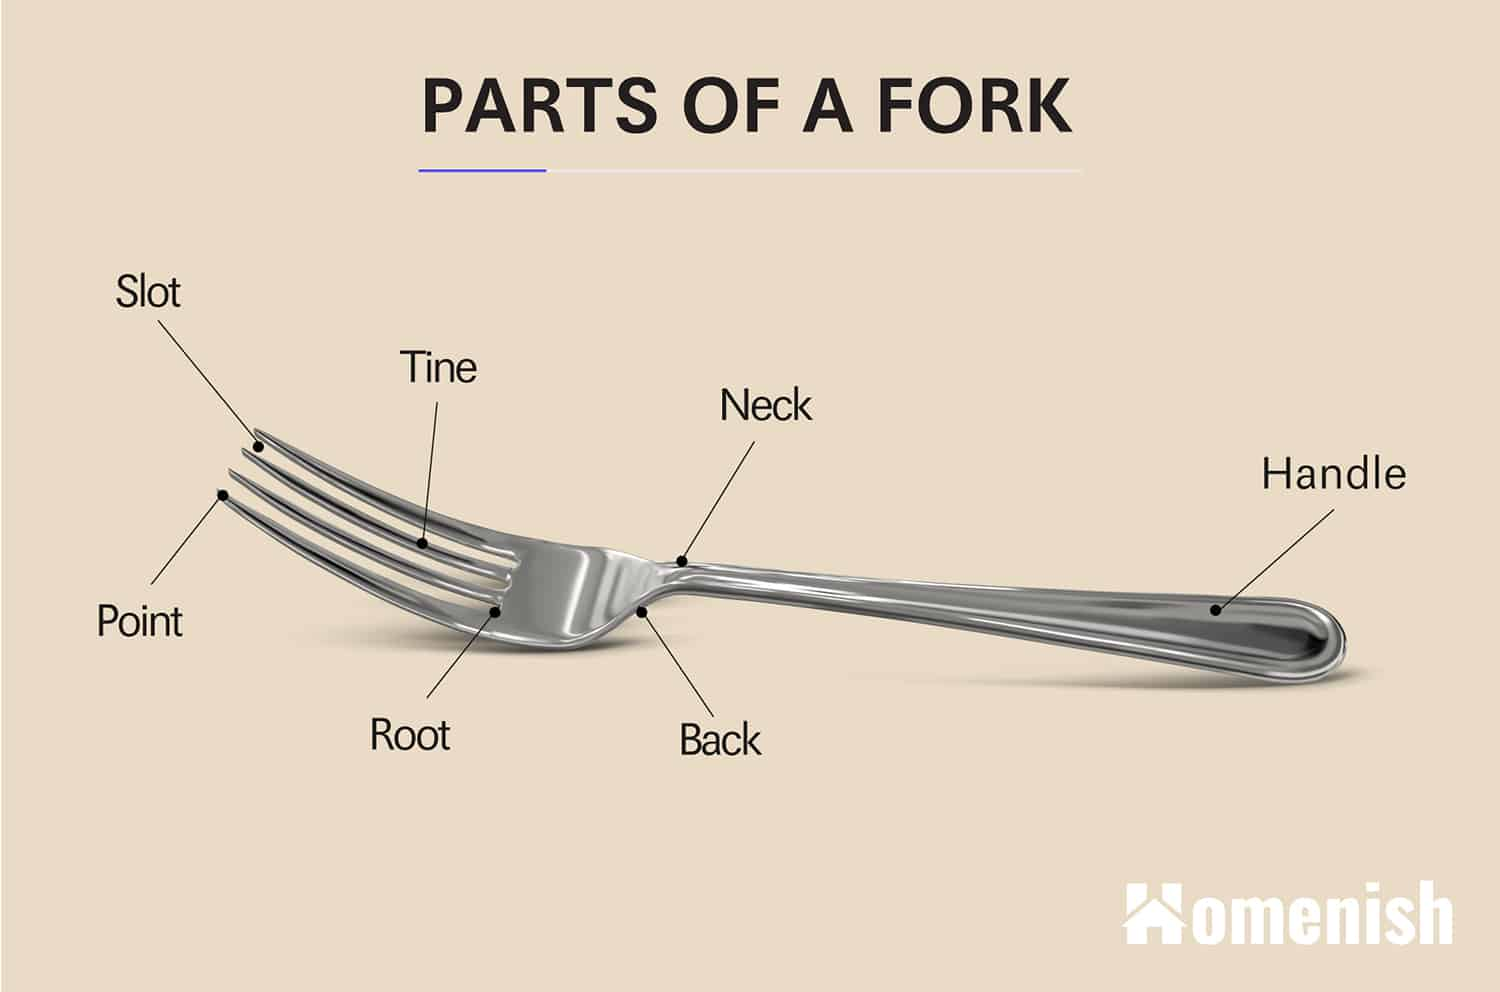 Parts of a Fork